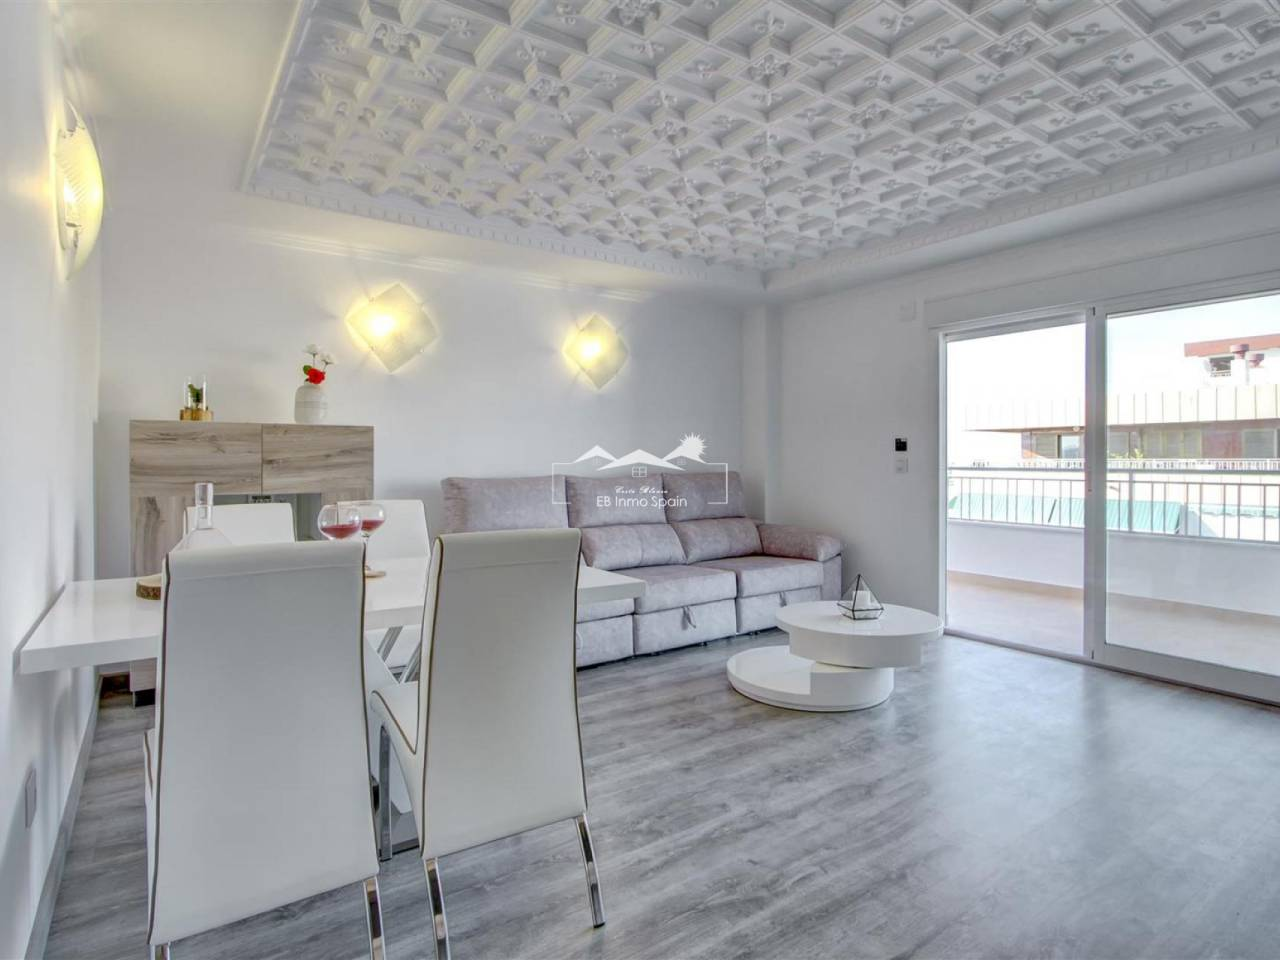 Seconde main - Appartement - Torrevieja - Acequion